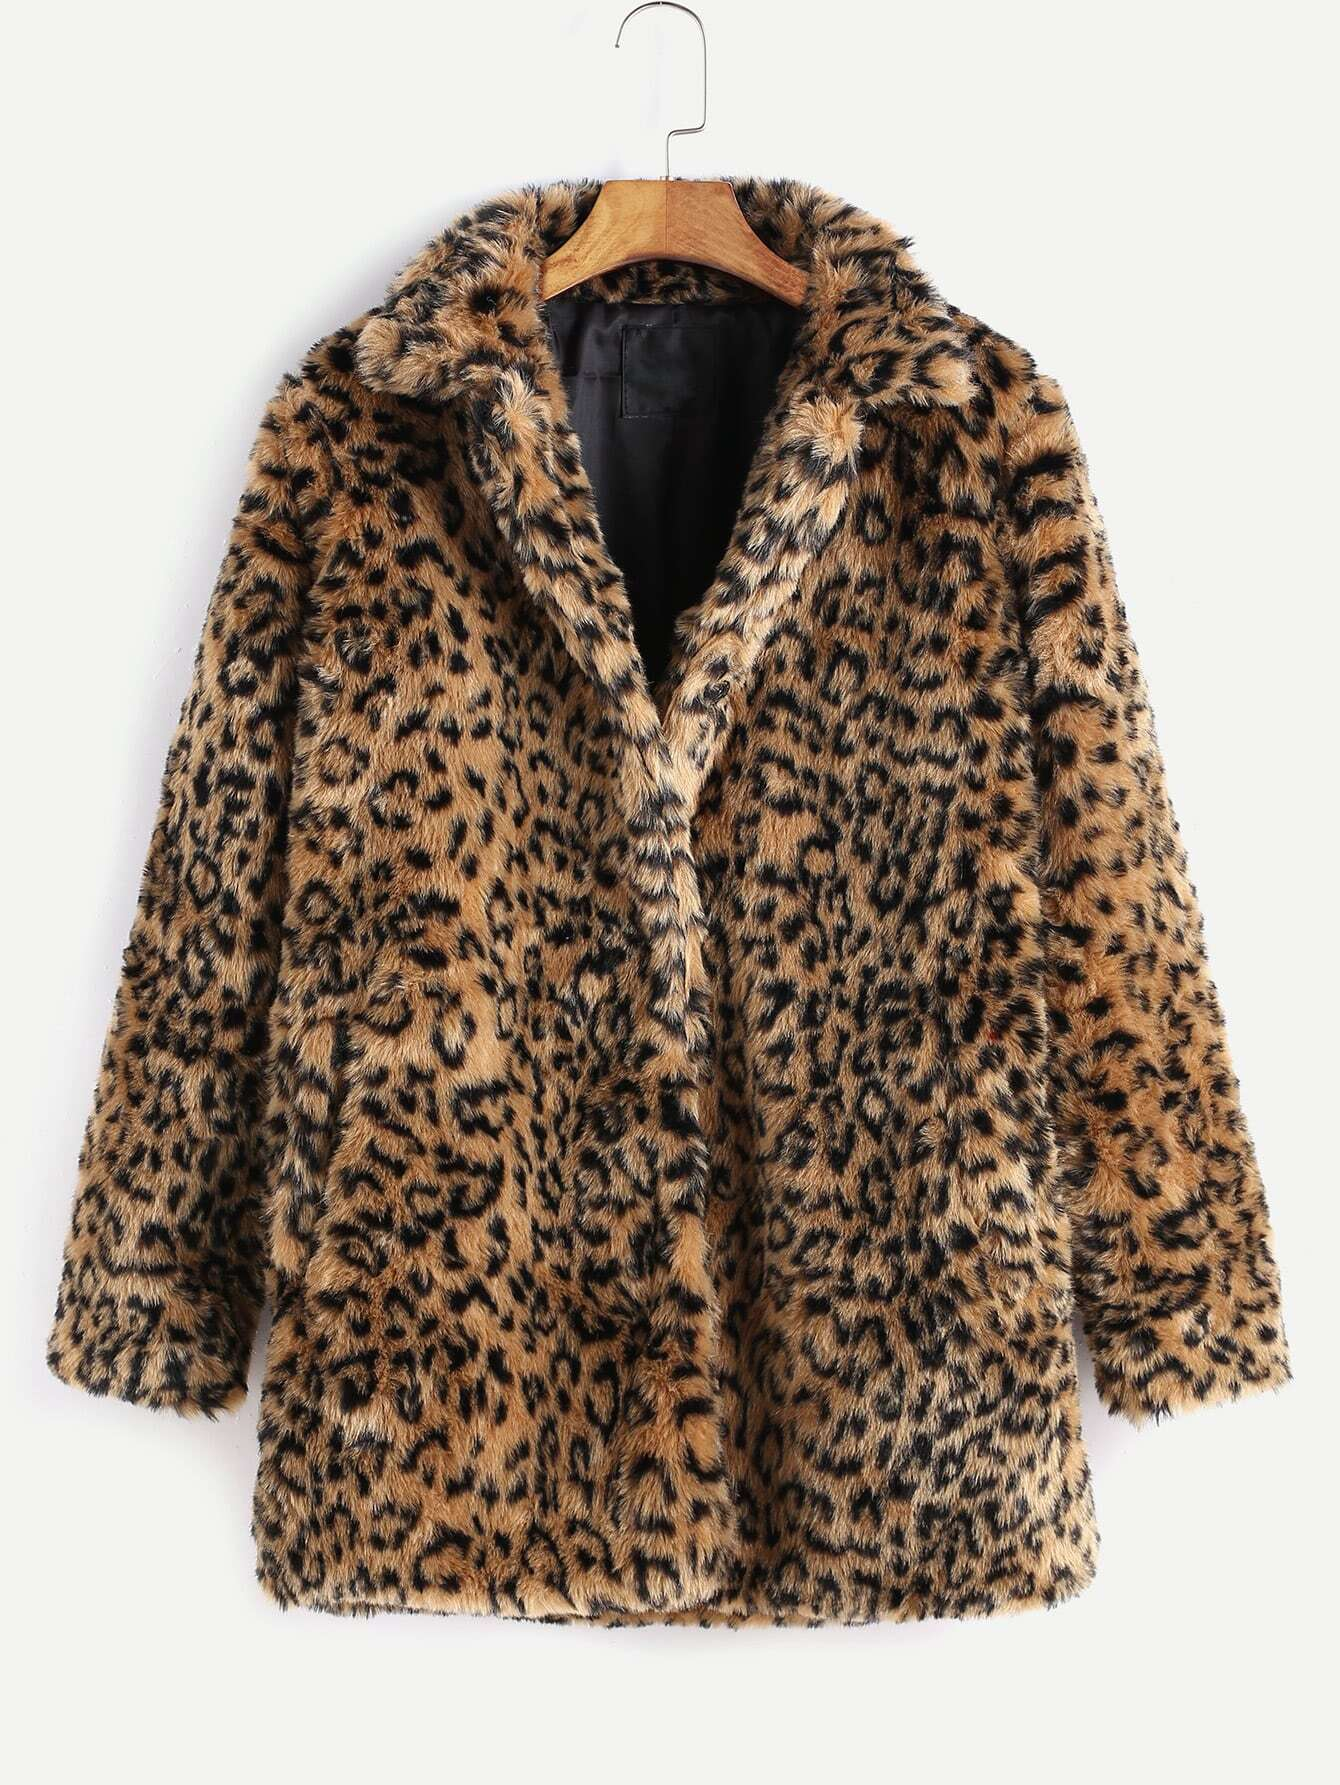 Coat Multicolor Faux Fur Collar Party Single Breasted Long Winter Leopard Long Sleeve Oversized Outerwear.